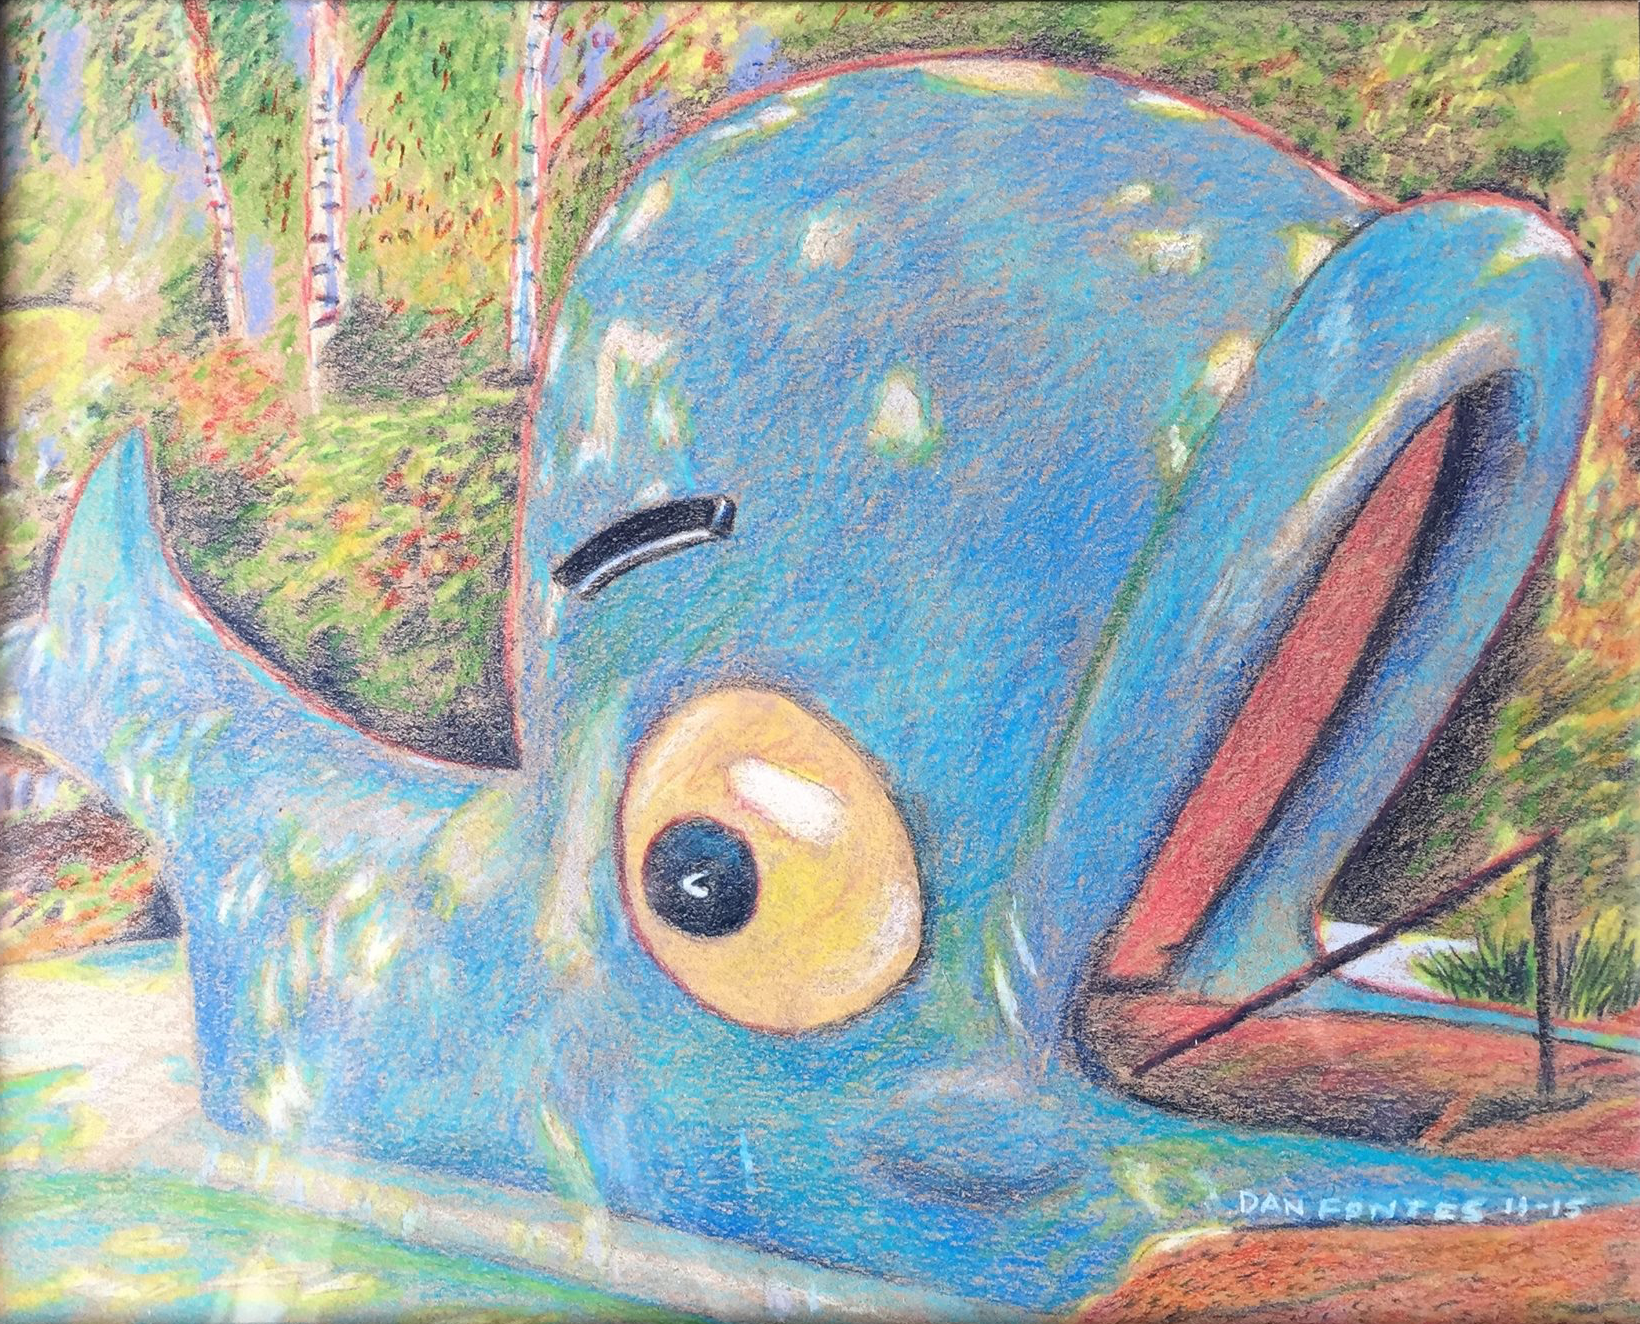 """Title: """"Willie the Whale, Children's Fairyland, Oakland"""" 11-15    Media: Prismacolors    Dimensions: 8"""" x 11""""    Collection of: Kristi Holohan, Oakland"""